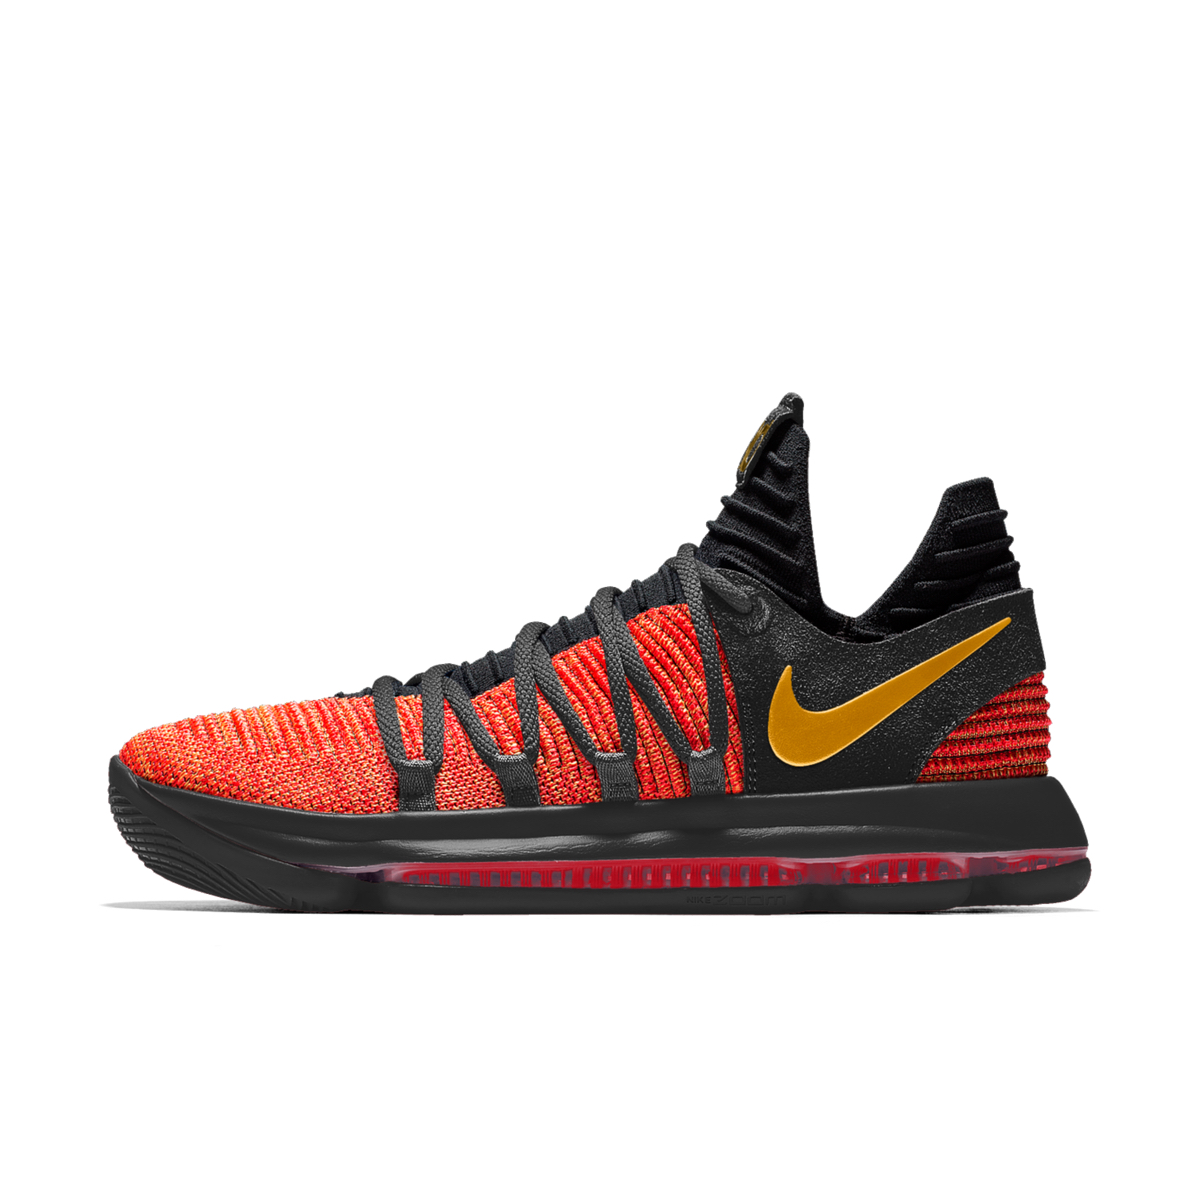 Custom Kd  Shoes For Sale